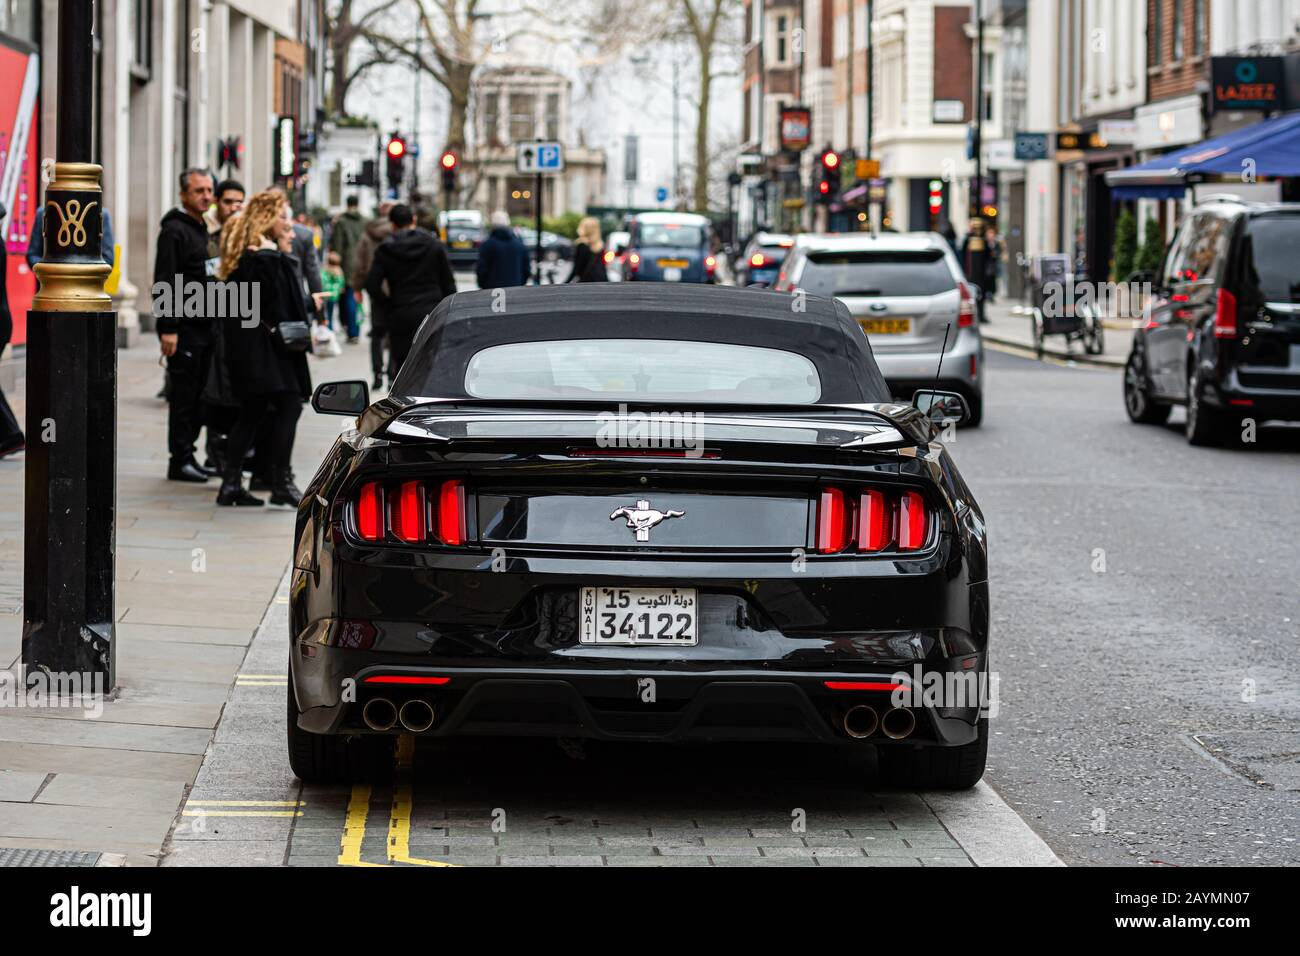 London, England, UK - January 2, 2020: a black, expensive sports muscle car parked on the edge of a city street Stock Photo